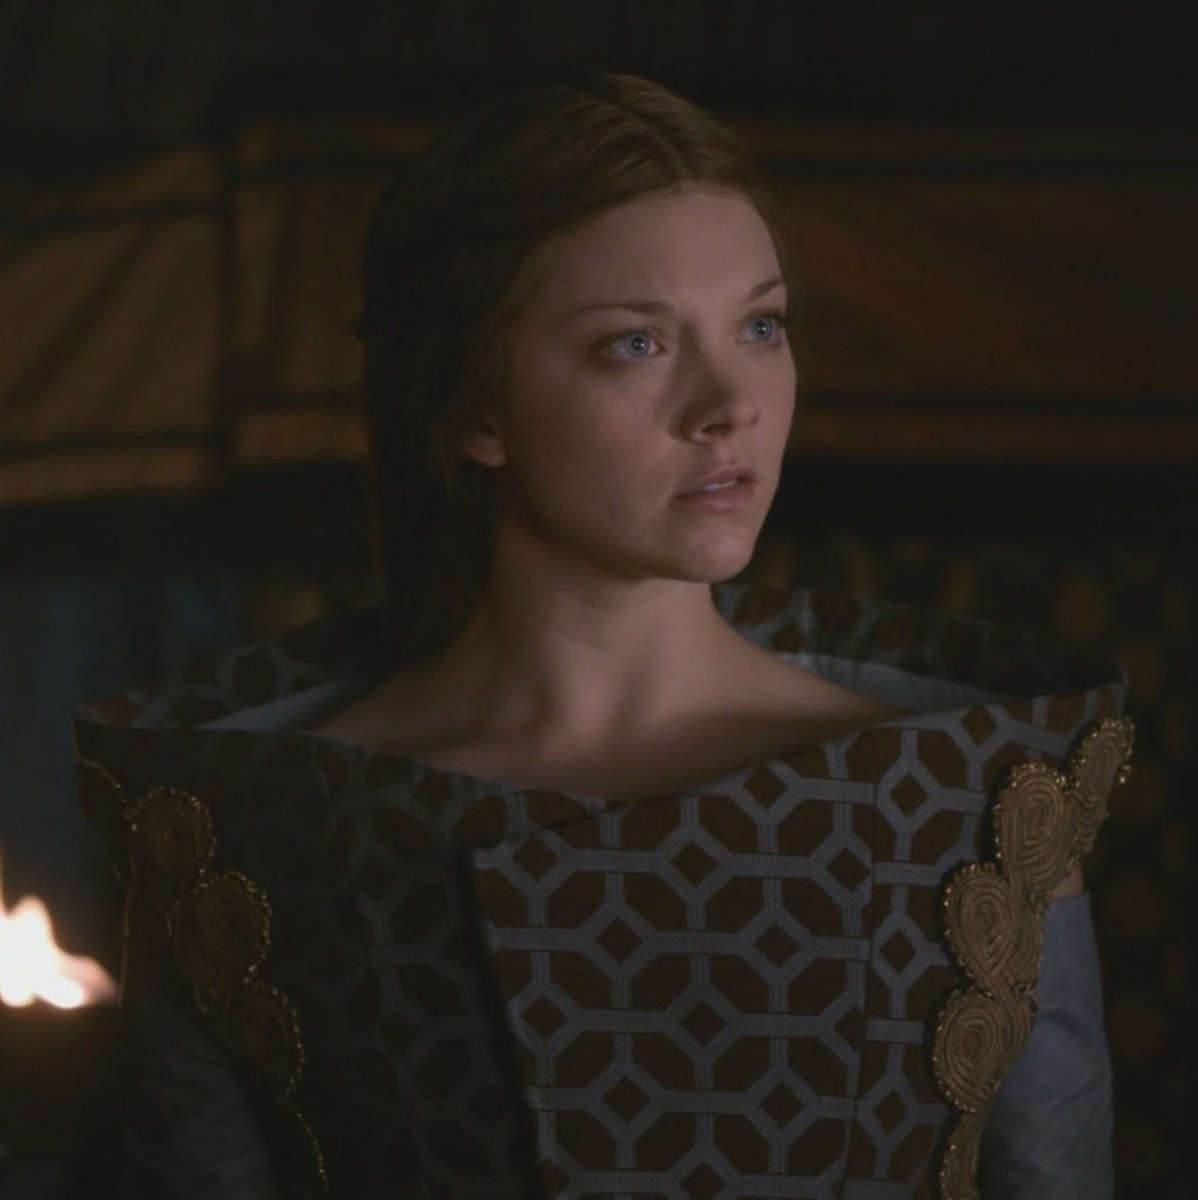 Natalie Dormer as Margaery